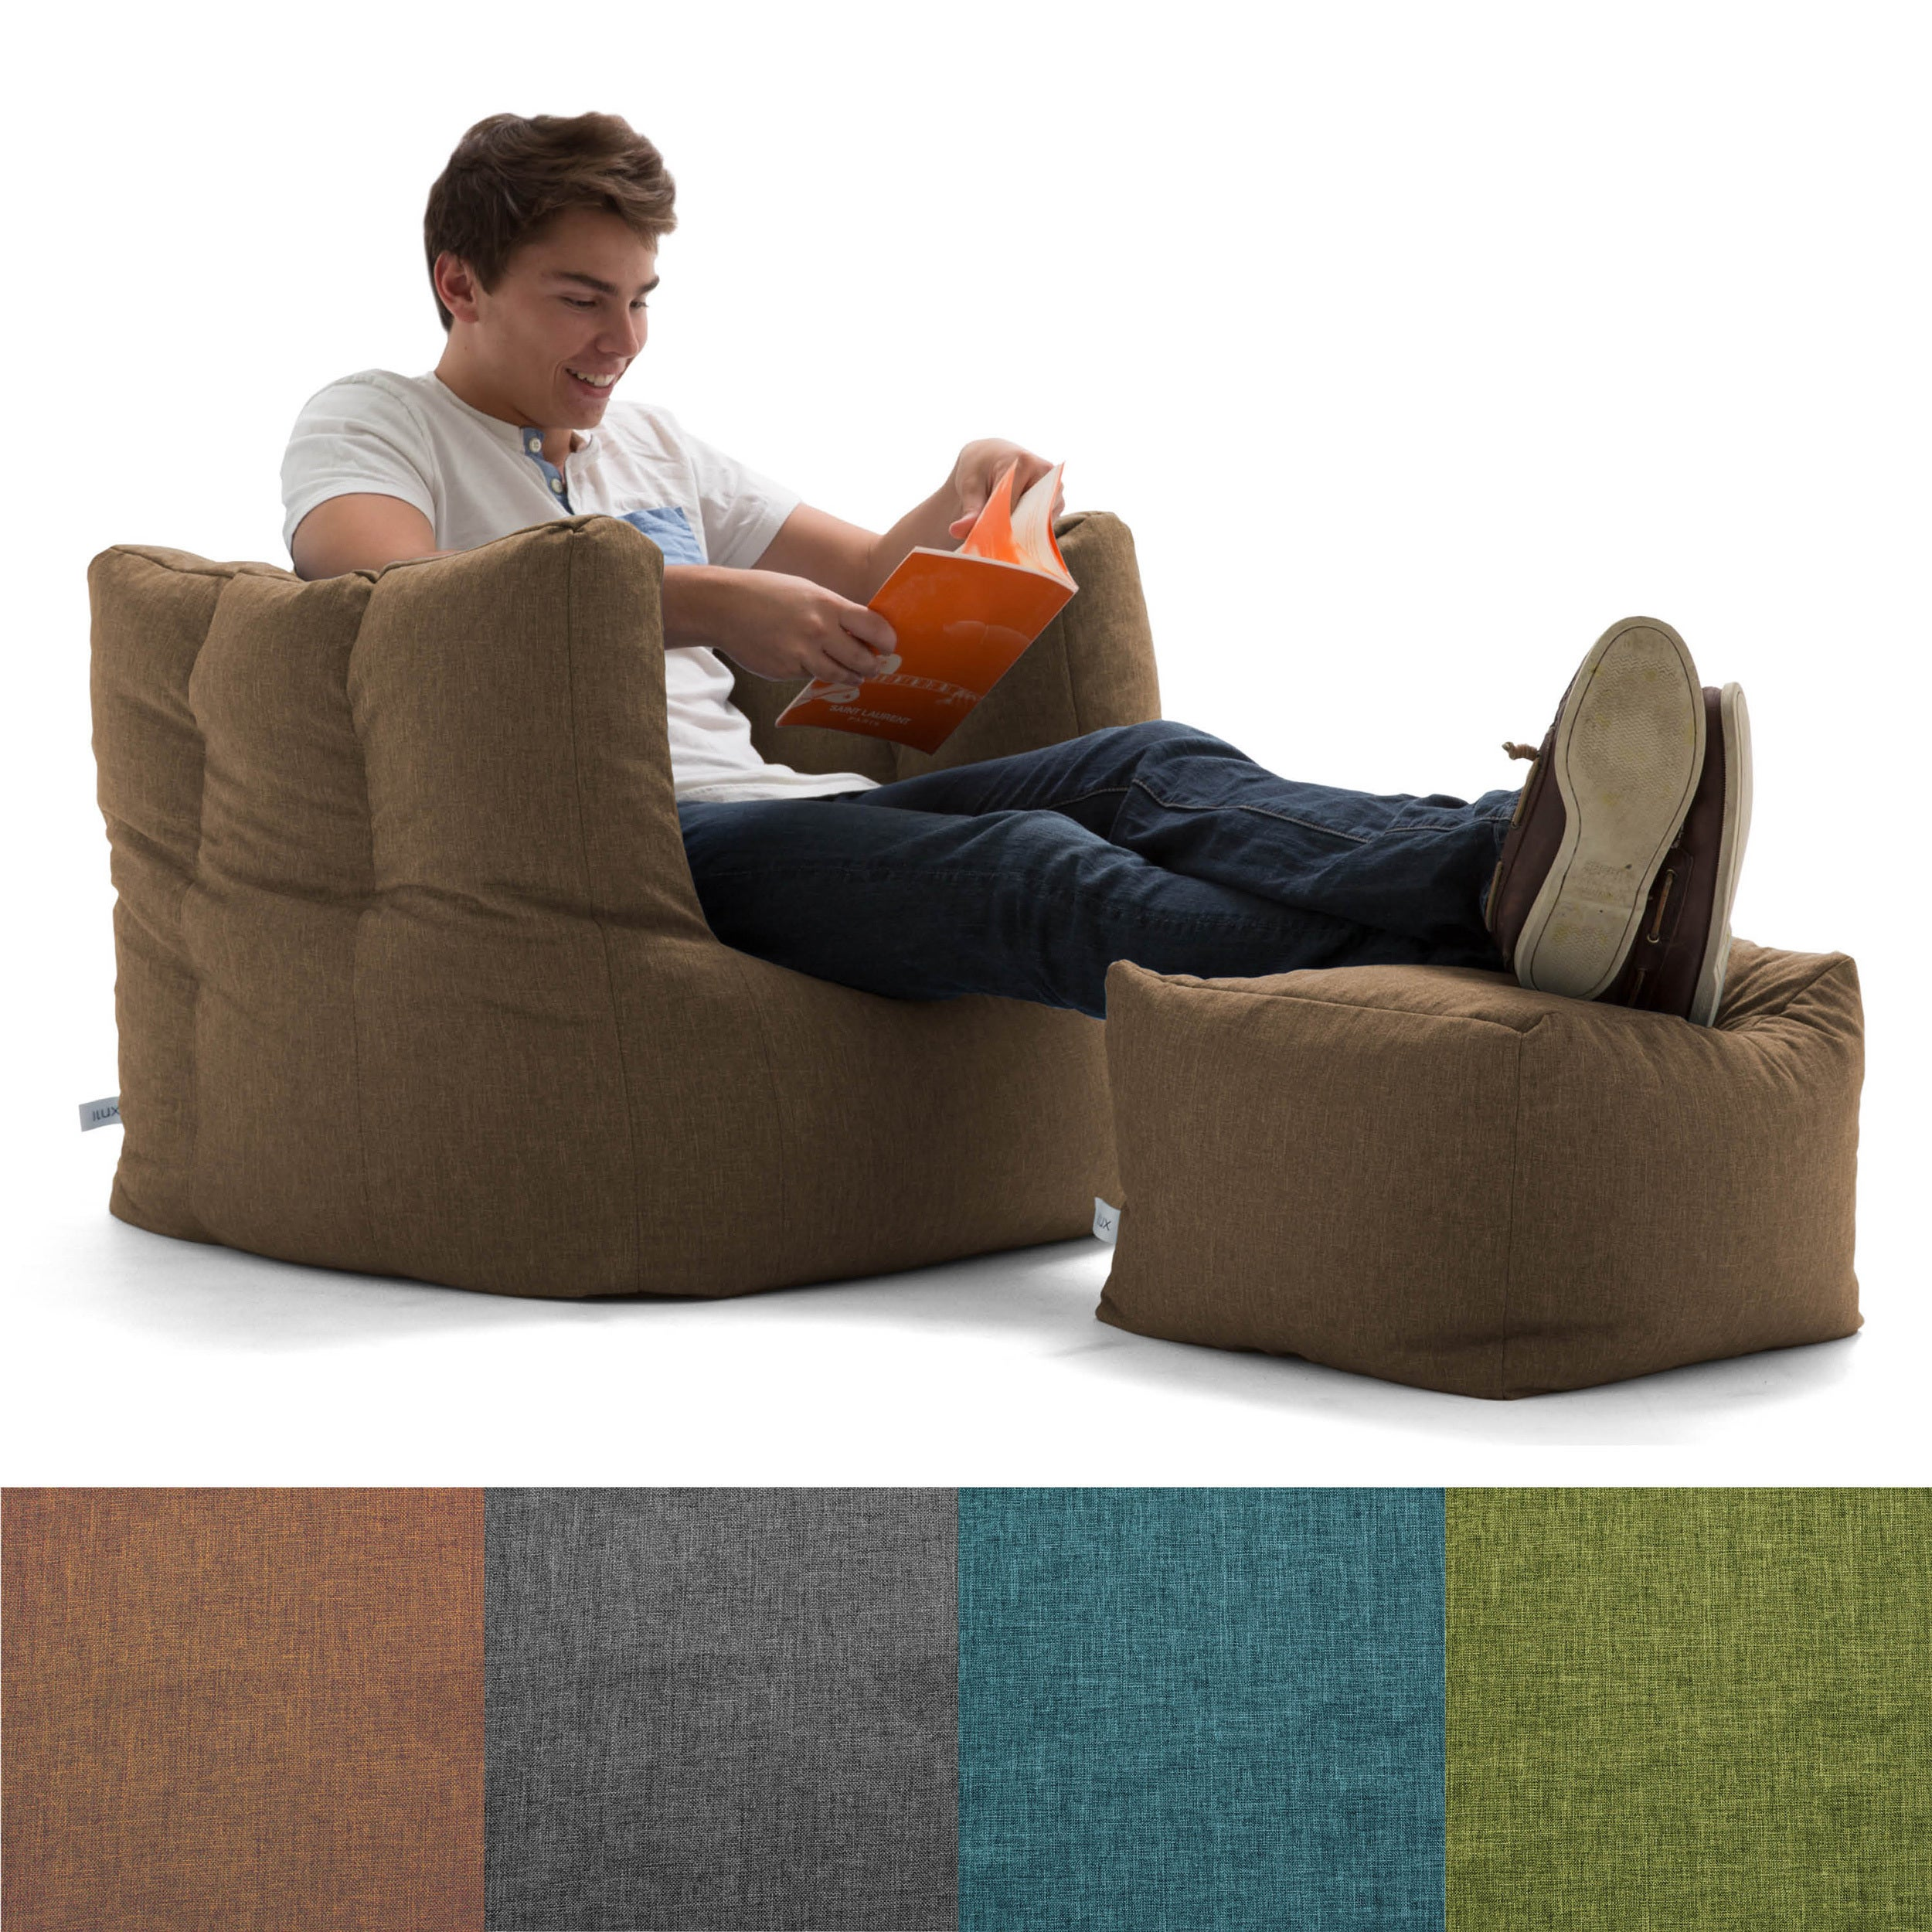 Shop Big Joe Lux Cube U0026 Ottoman Bean Bag Chair, Multiple Colors   Free  Shipping Today   Overstock.com   12927627